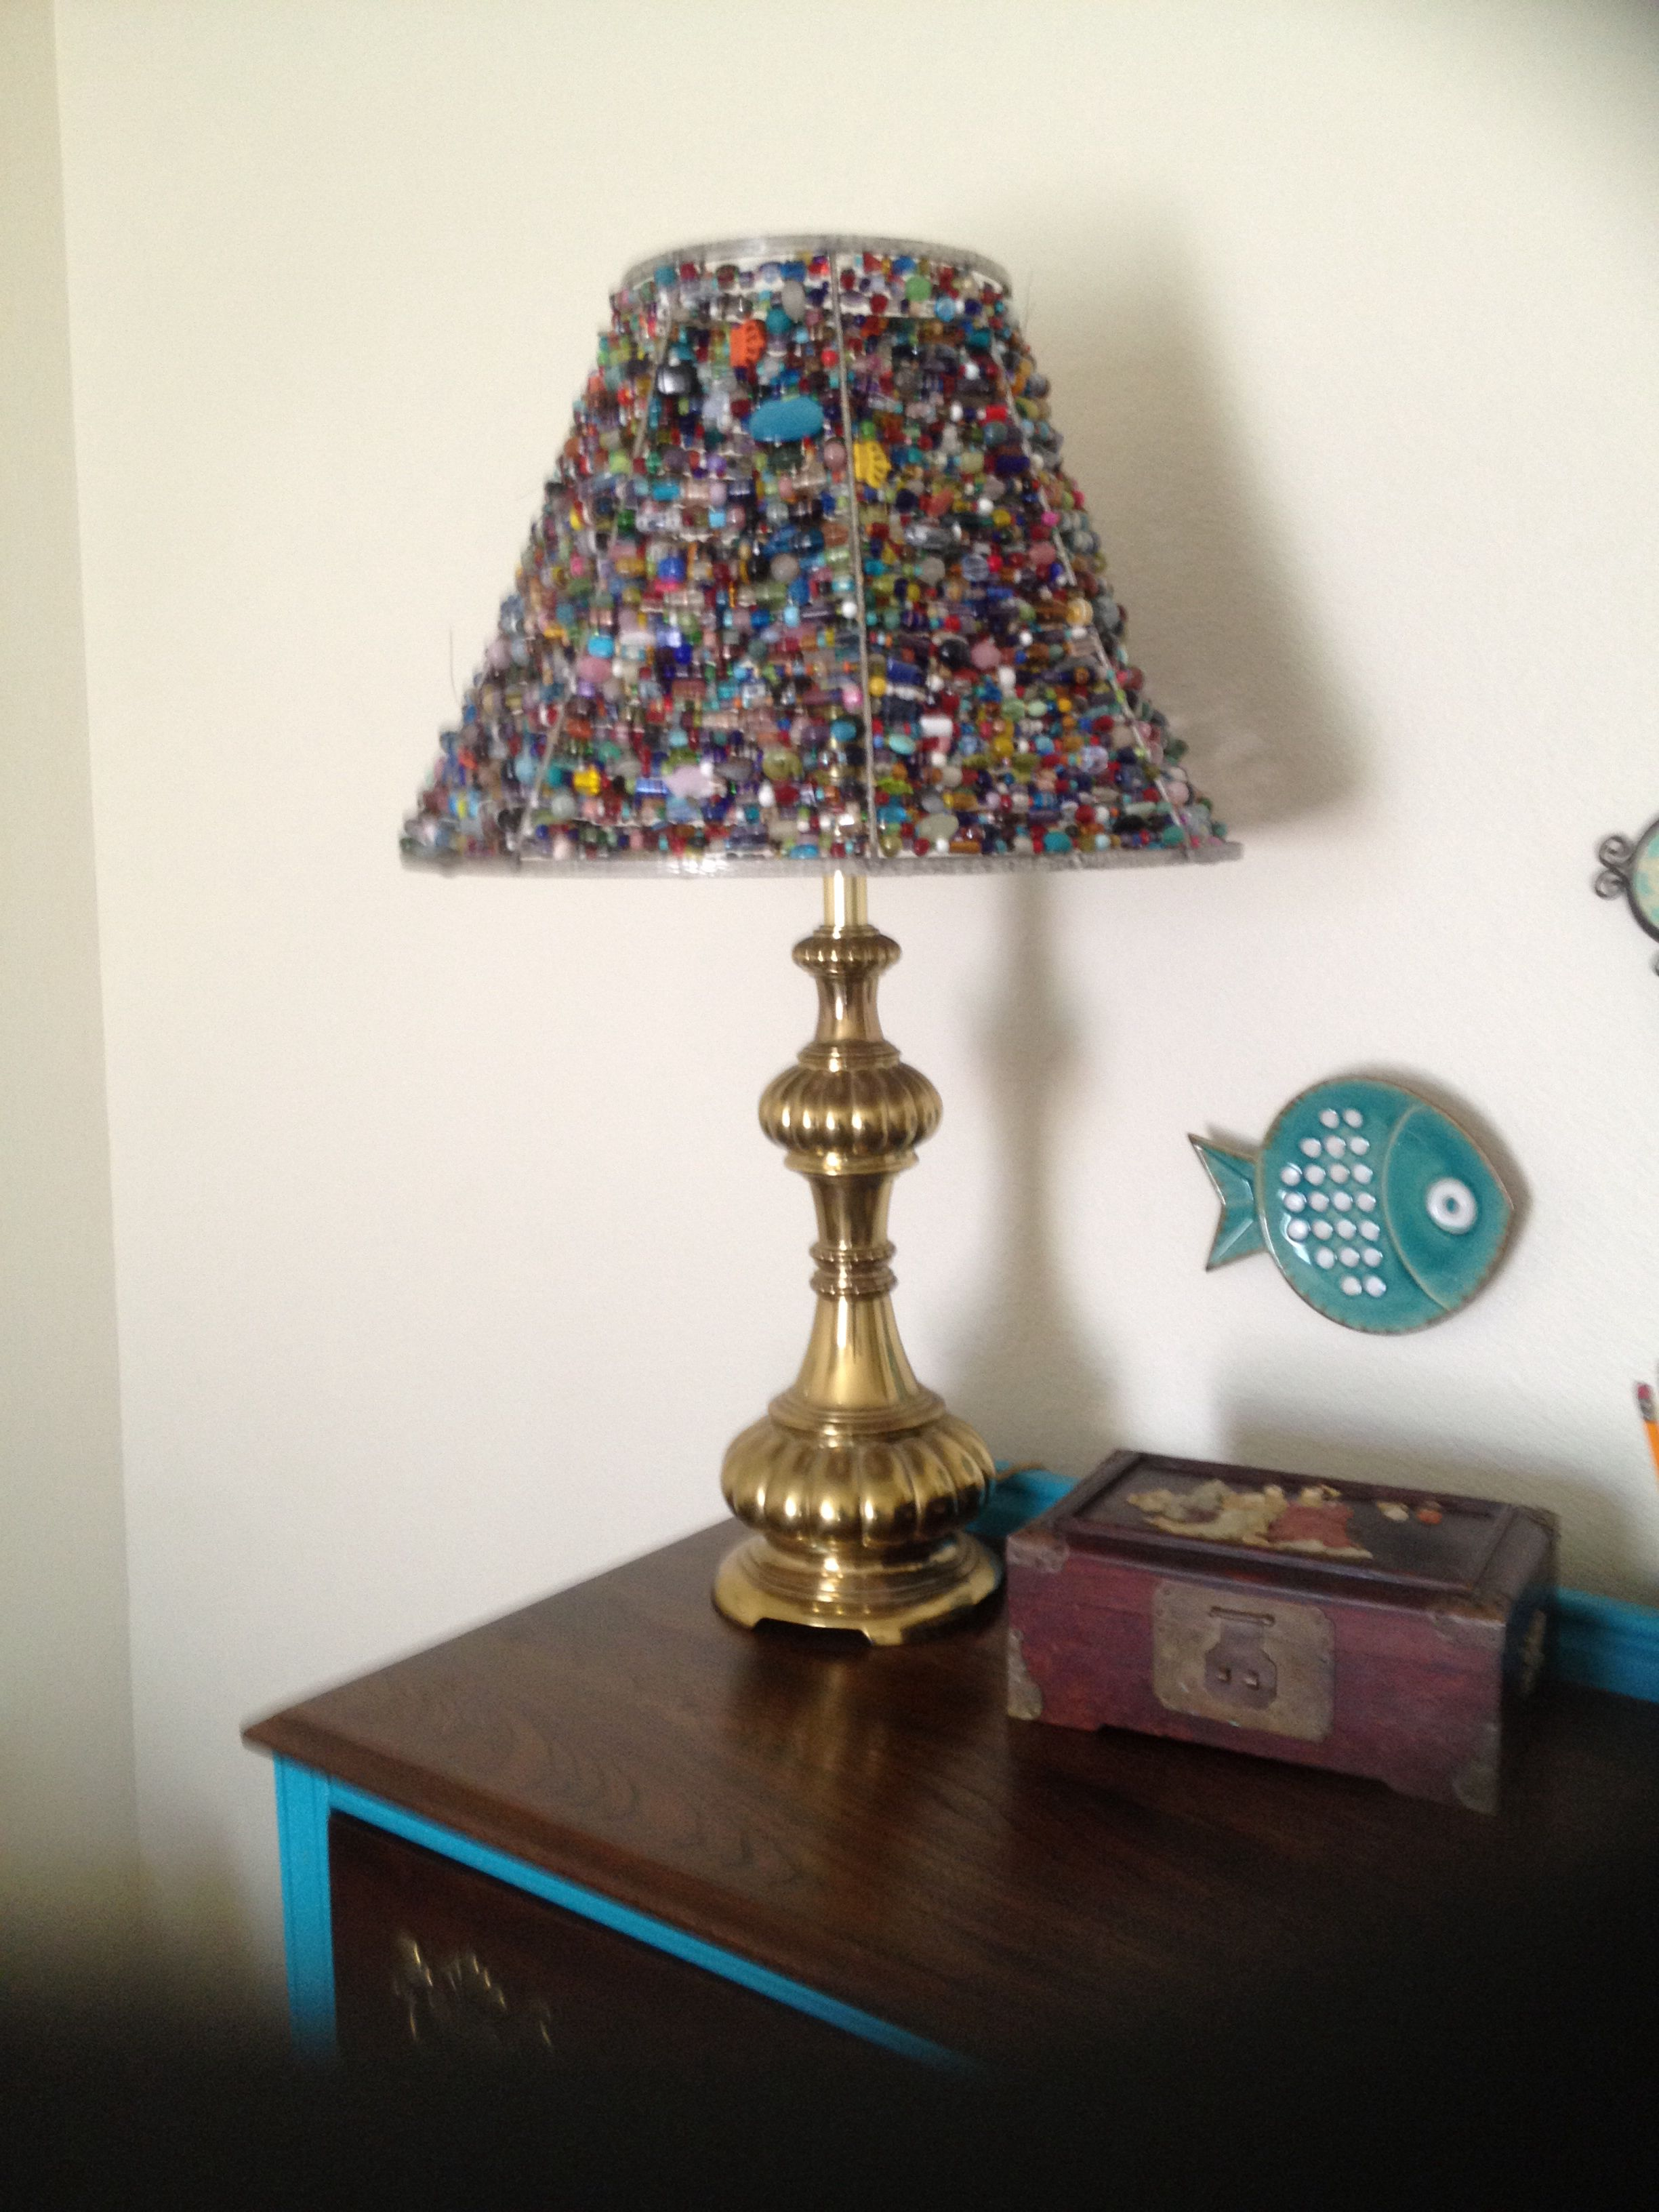 Beaded lampshade i made from an old lampshade wire frame and close beaded lampshade i made from an old lampshade wire frame and close to ten pounds of glass and stone beads i used heavy beading wire an crimp beads to keyboard keysfo